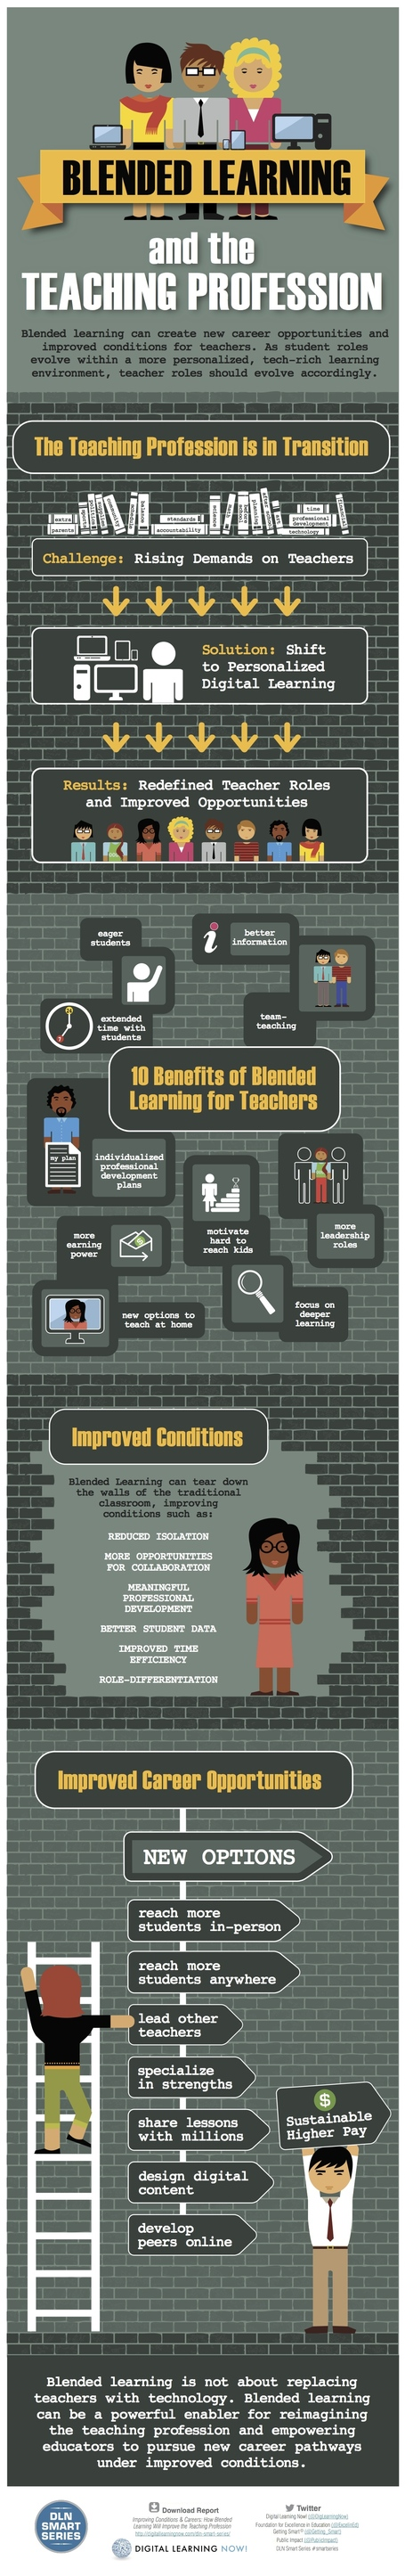 10 Reasons Teachers should Try Blended Learning ~ Educational Technology and Mobile Learning | Coordenadas | Scoop.it